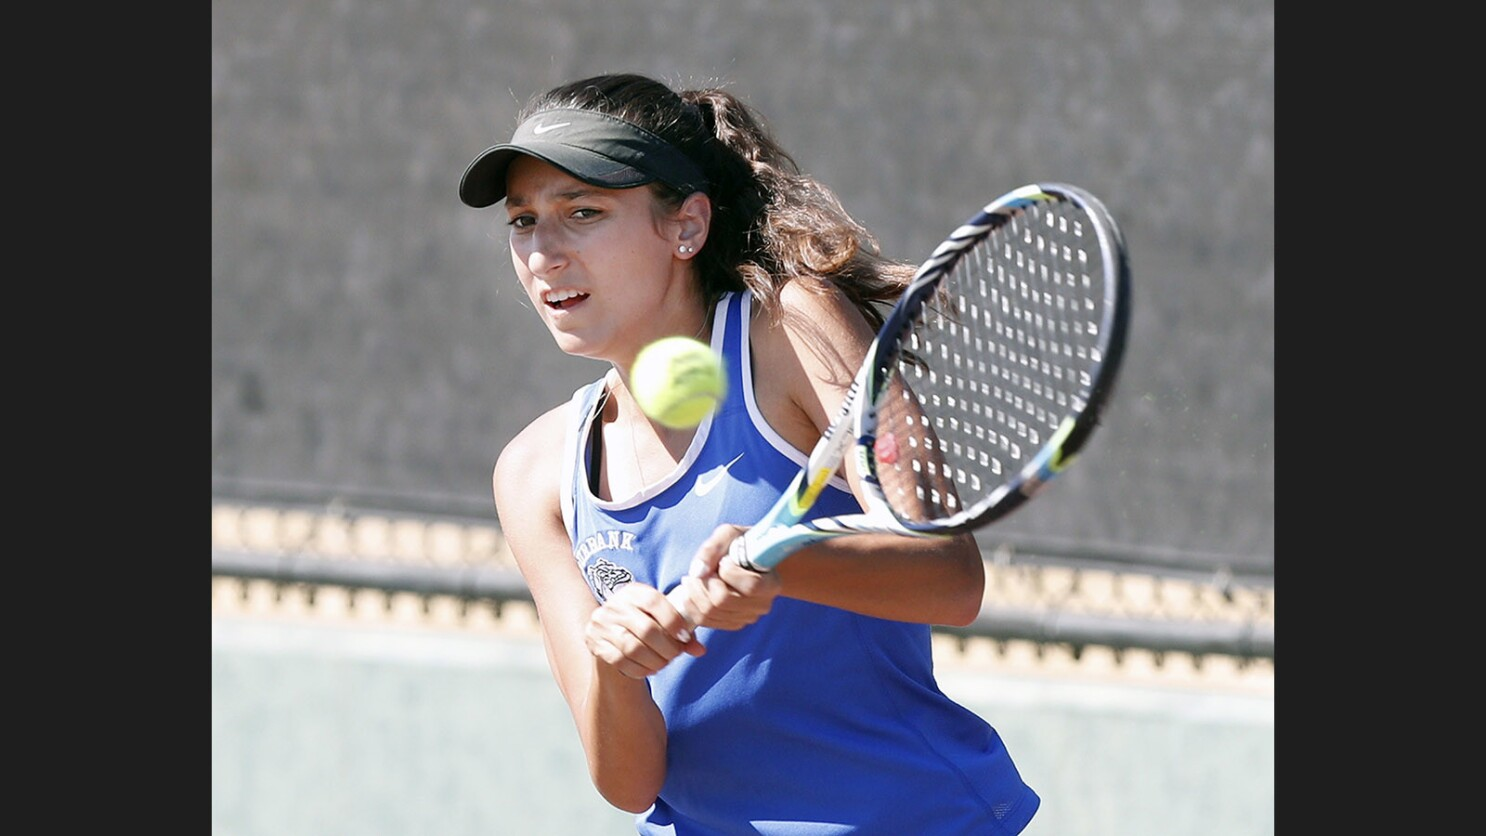 Girls' Tennis Preview: Plenty to look forward to for trio of teams